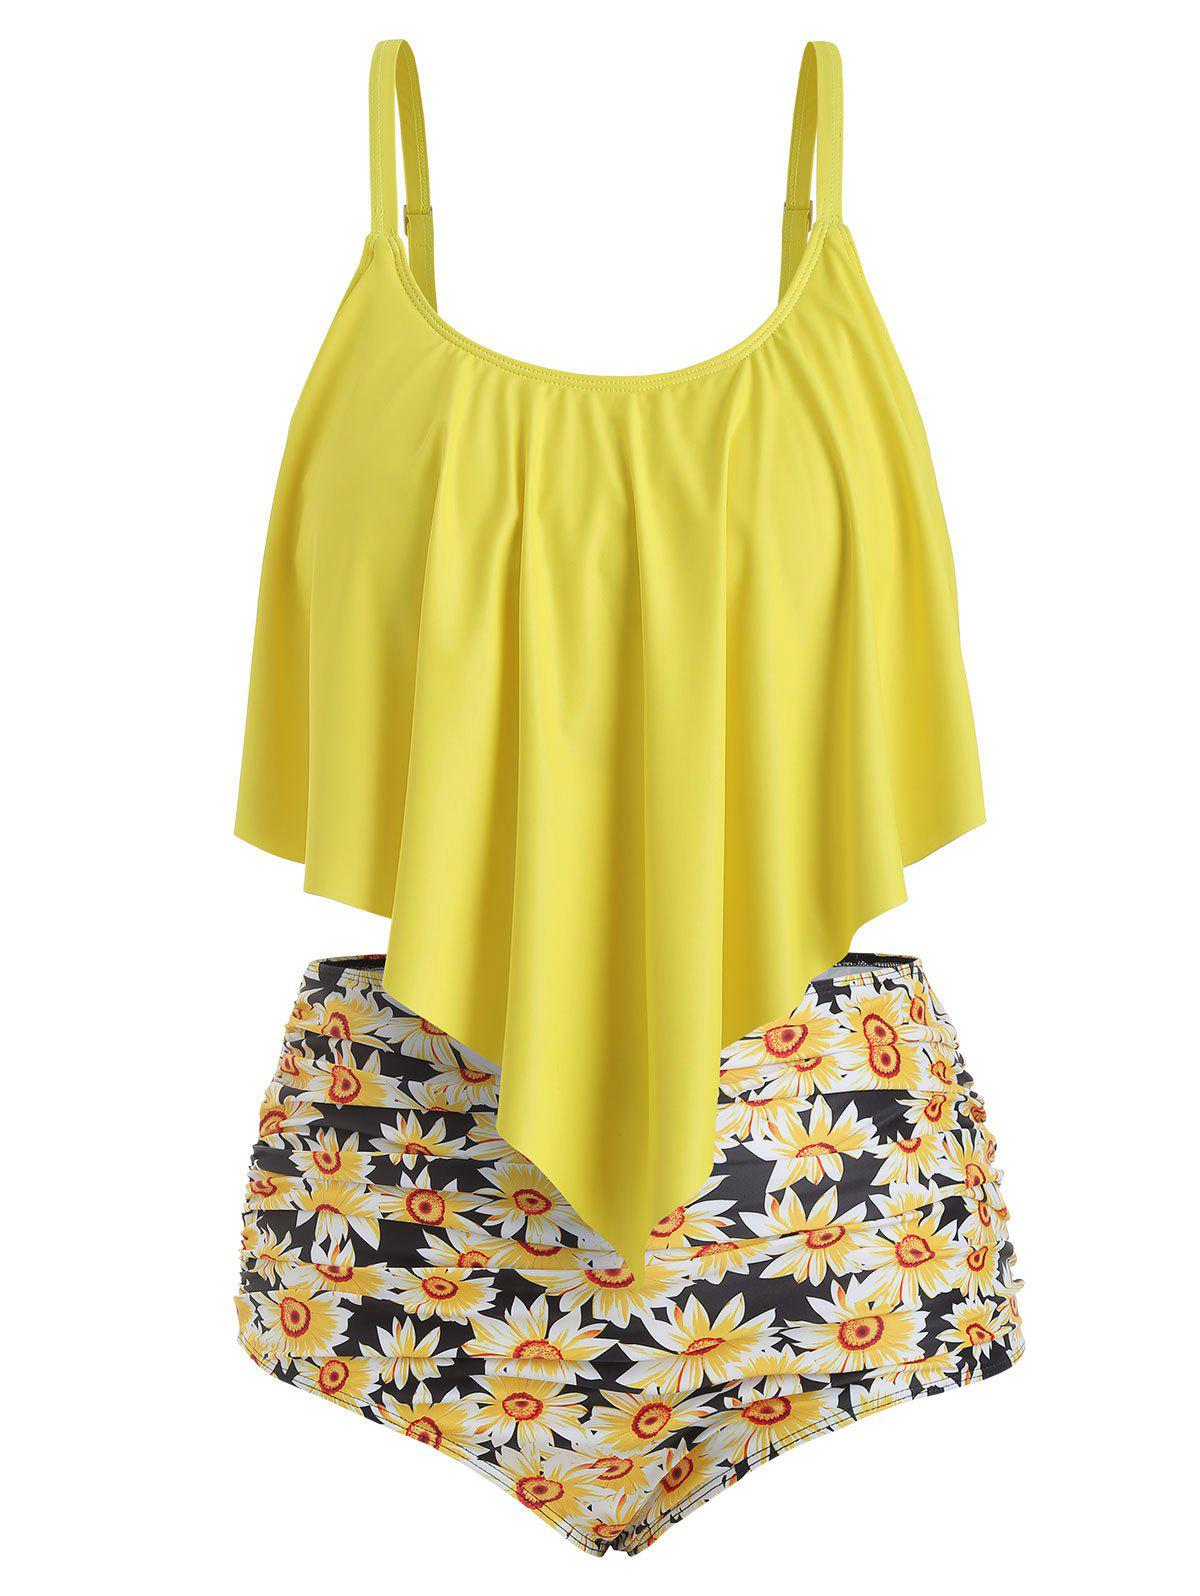 Plus Size Ruffled Sunflower Print Bikini Set - YELLOW 2X